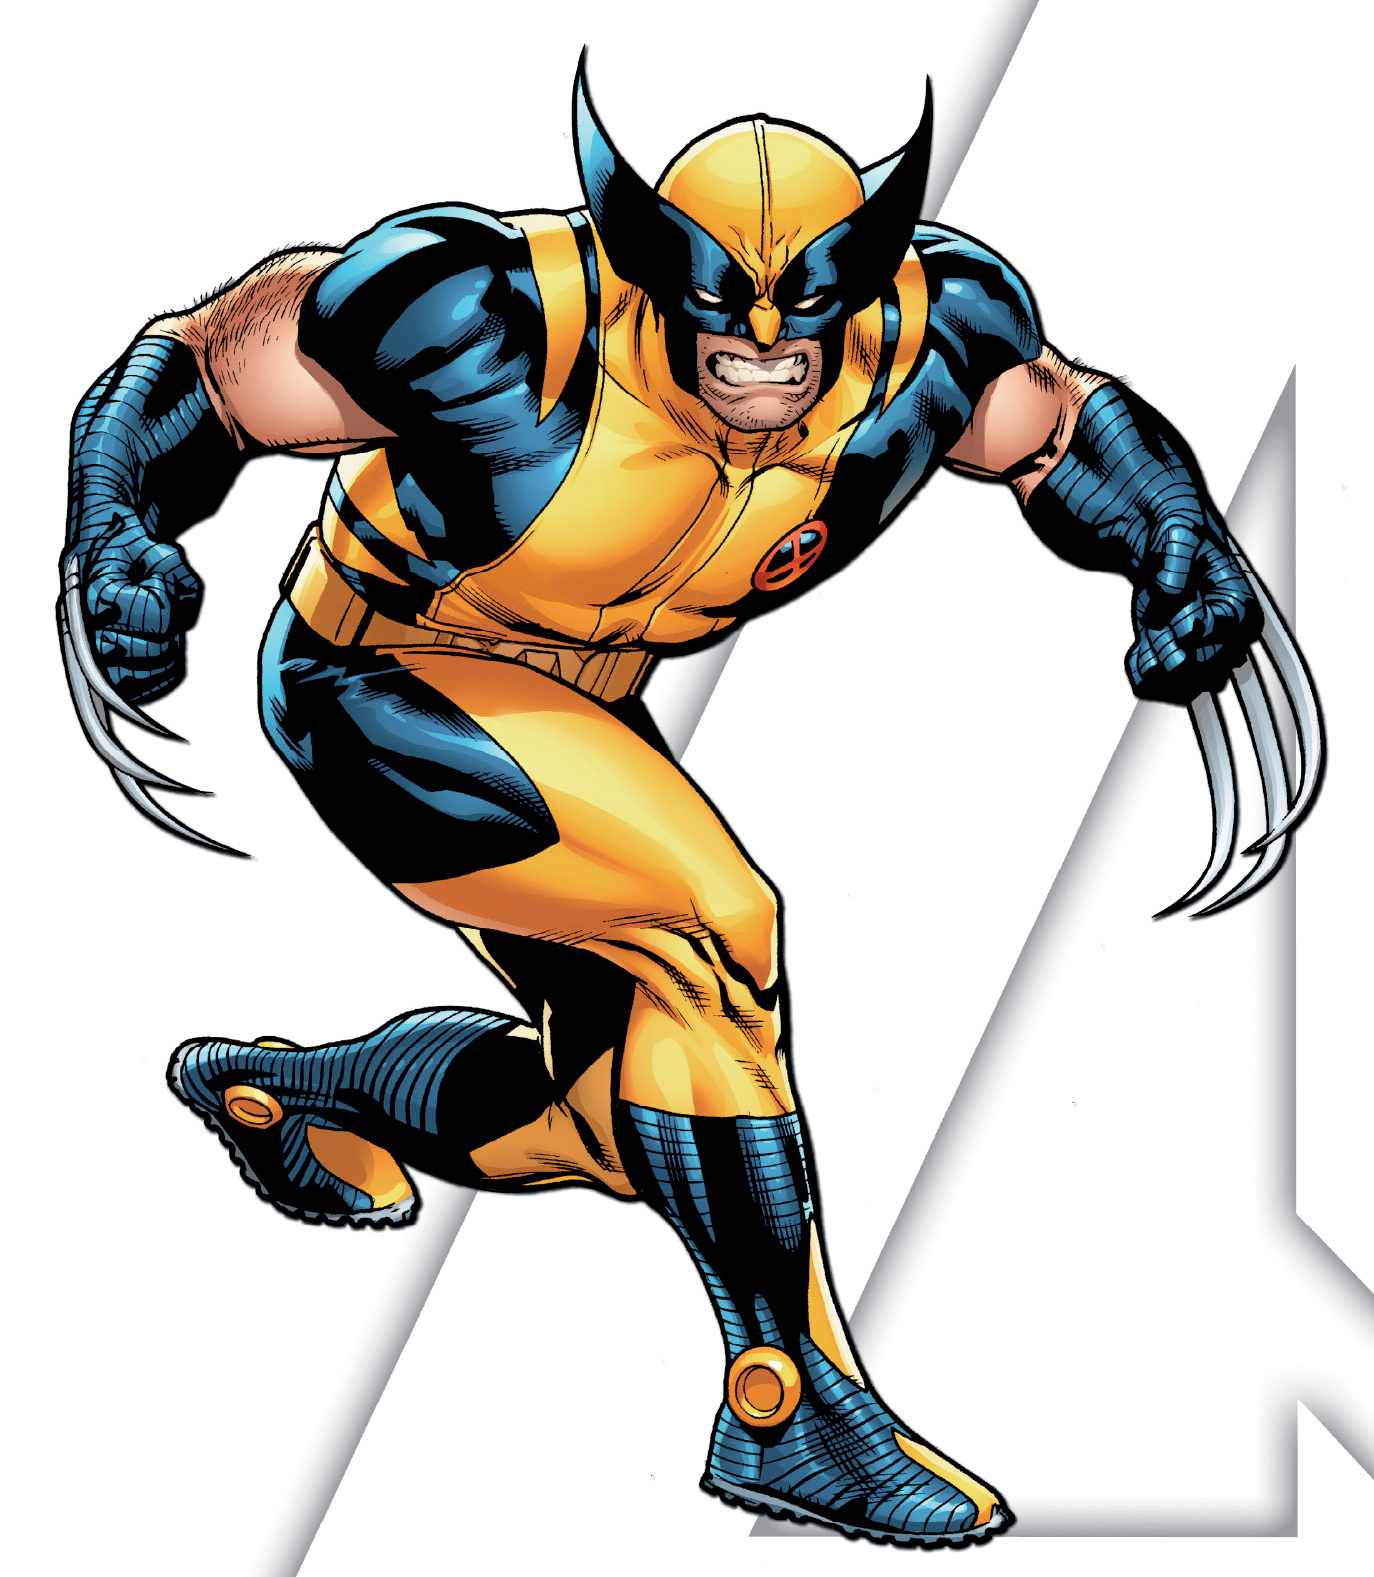 Marvel wolverine clipart graphic freeuse stock Marvel Wolverine Clipart - Clipart Kid graphic freeuse stock